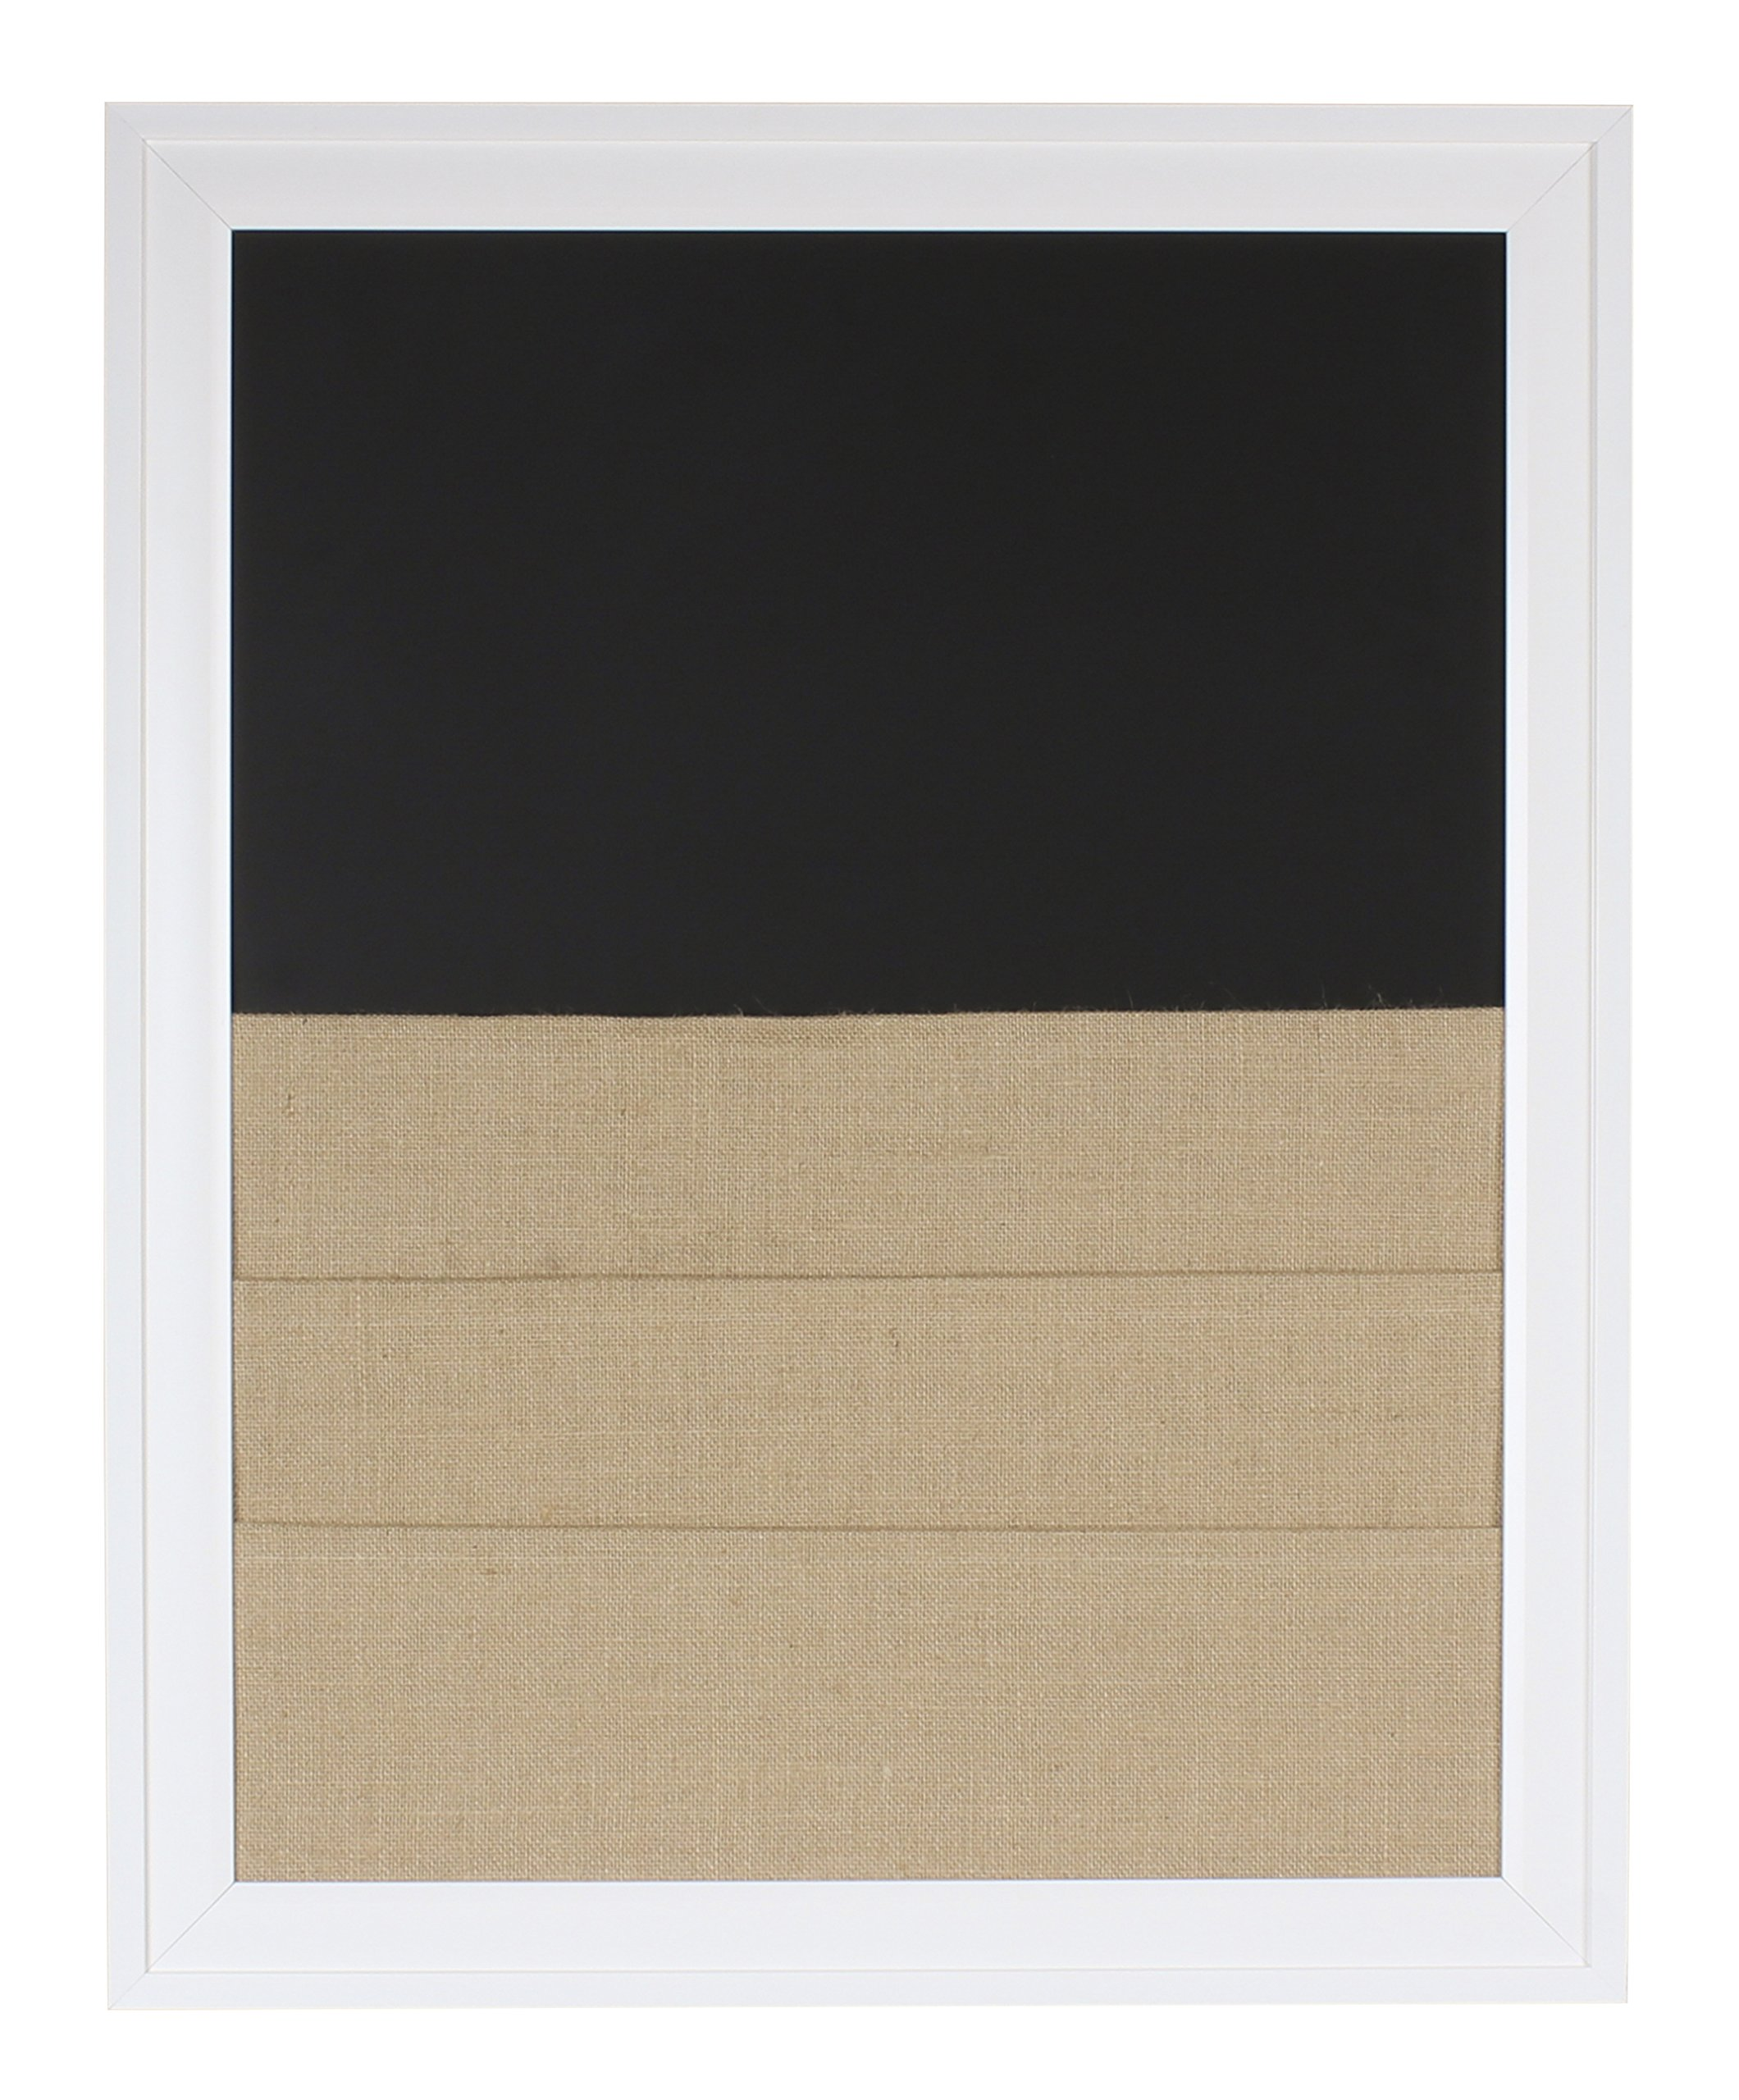 DesignOvation 209403 Bosc Framed Combination Magnetic Chalkboard and Burlap Pockets Wall Board, White by DesignOvation